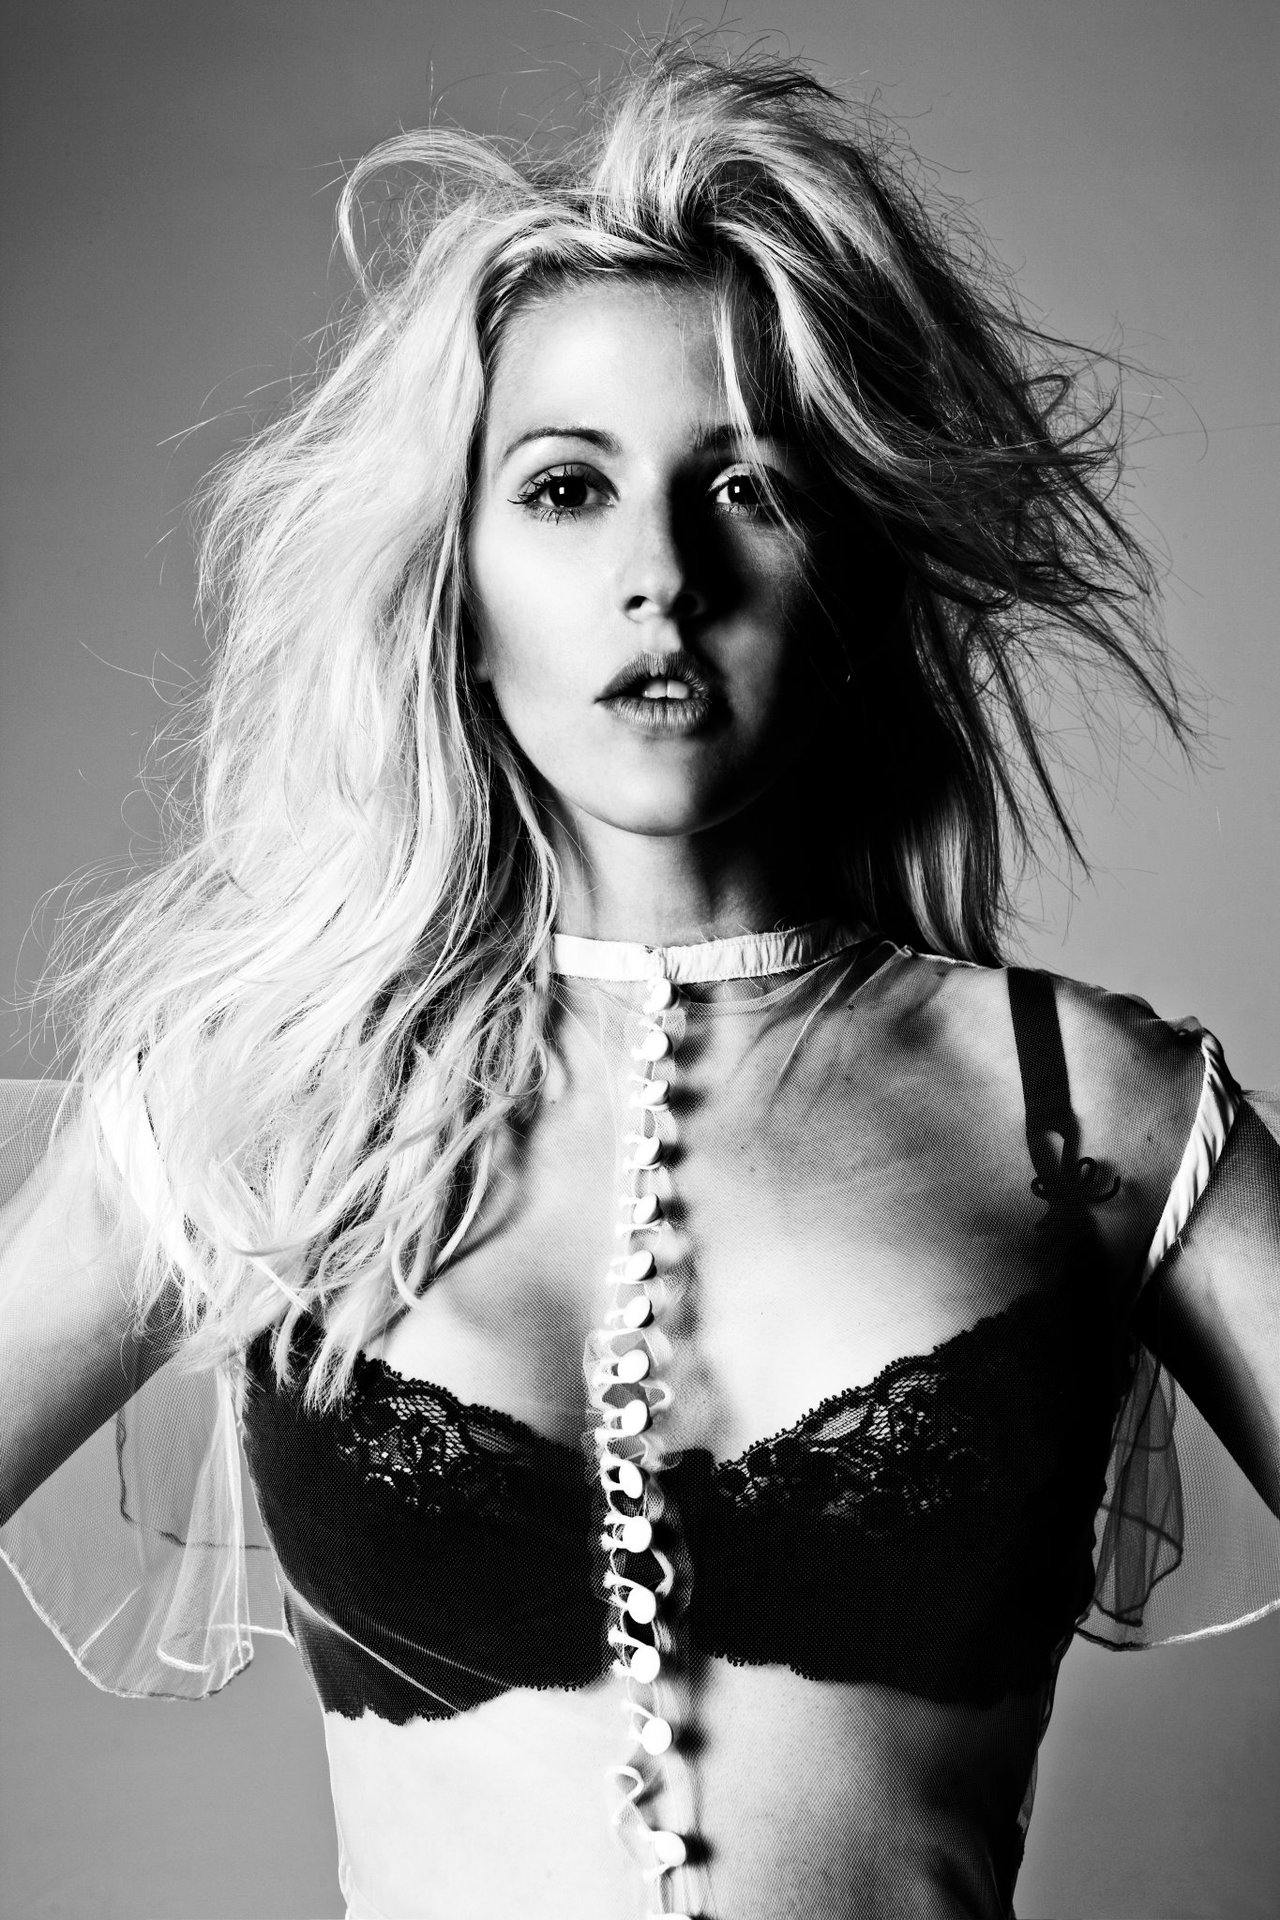 Ellie Goulding photo #541872